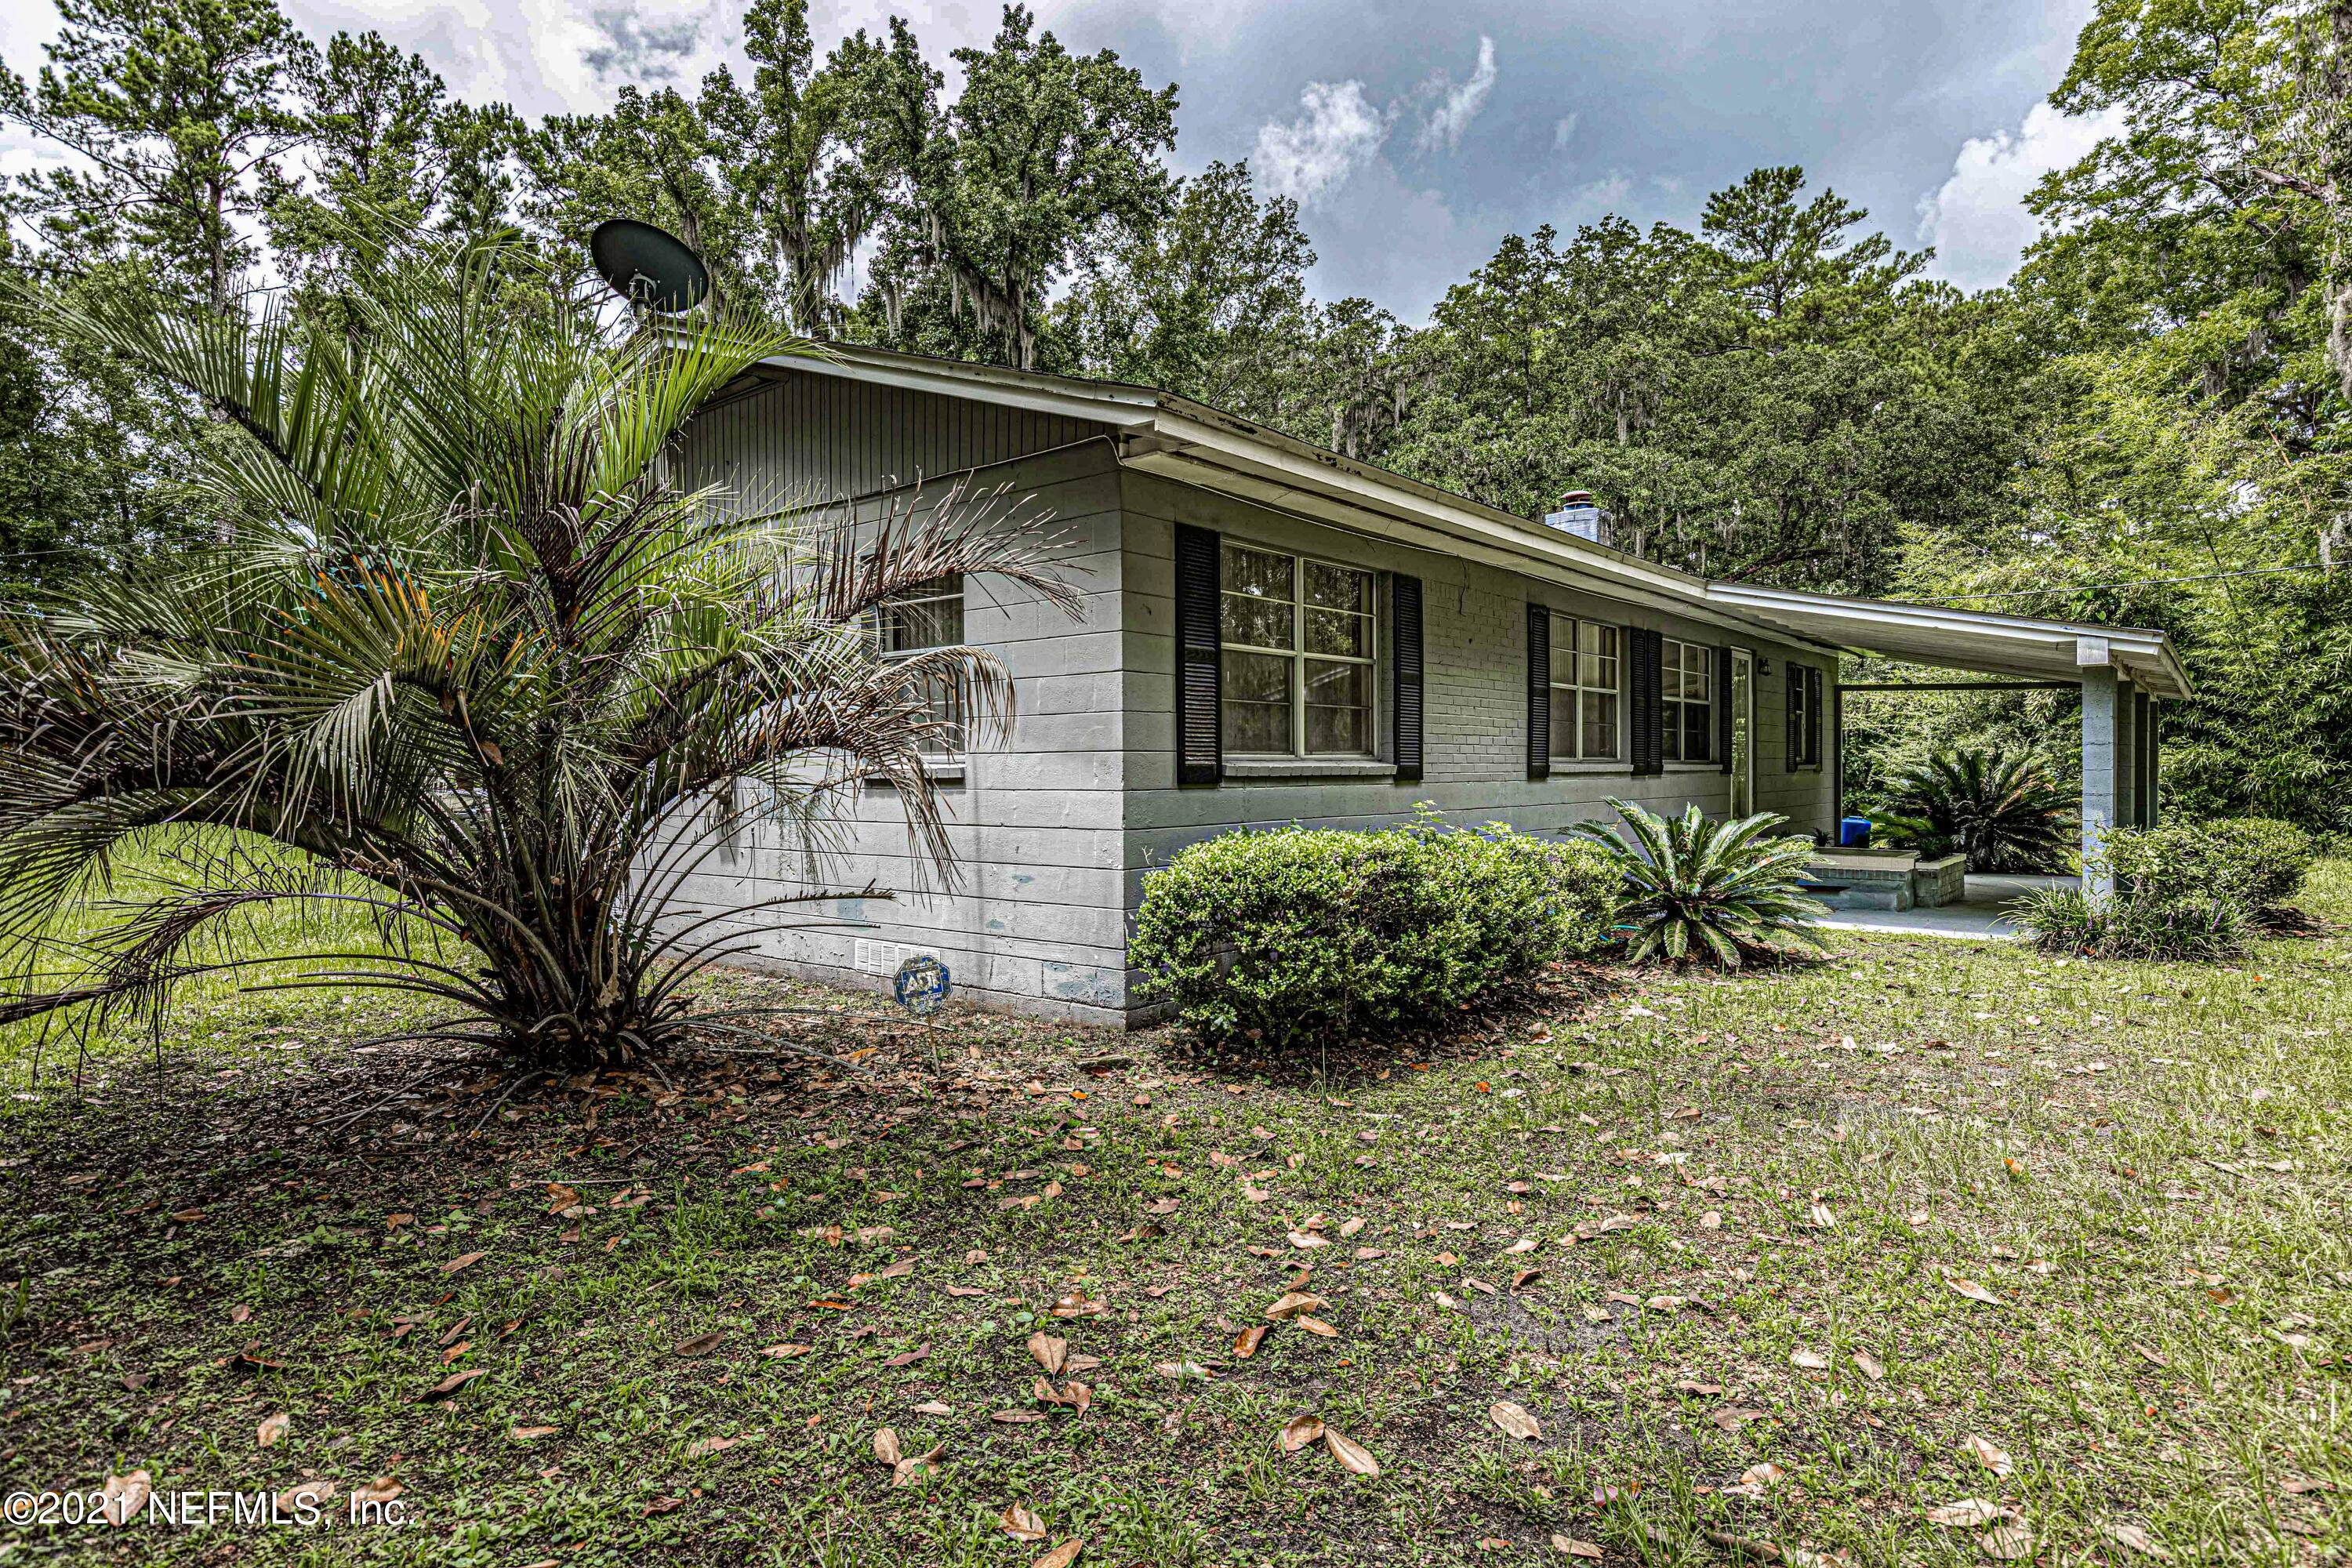 7410 SYCAMORE, JACKSONVILLE, FLORIDA 32219, 3 Bedrooms Bedrooms, ,1 BathroomBathrooms,Residential,For sale,SYCAMORE,1122261